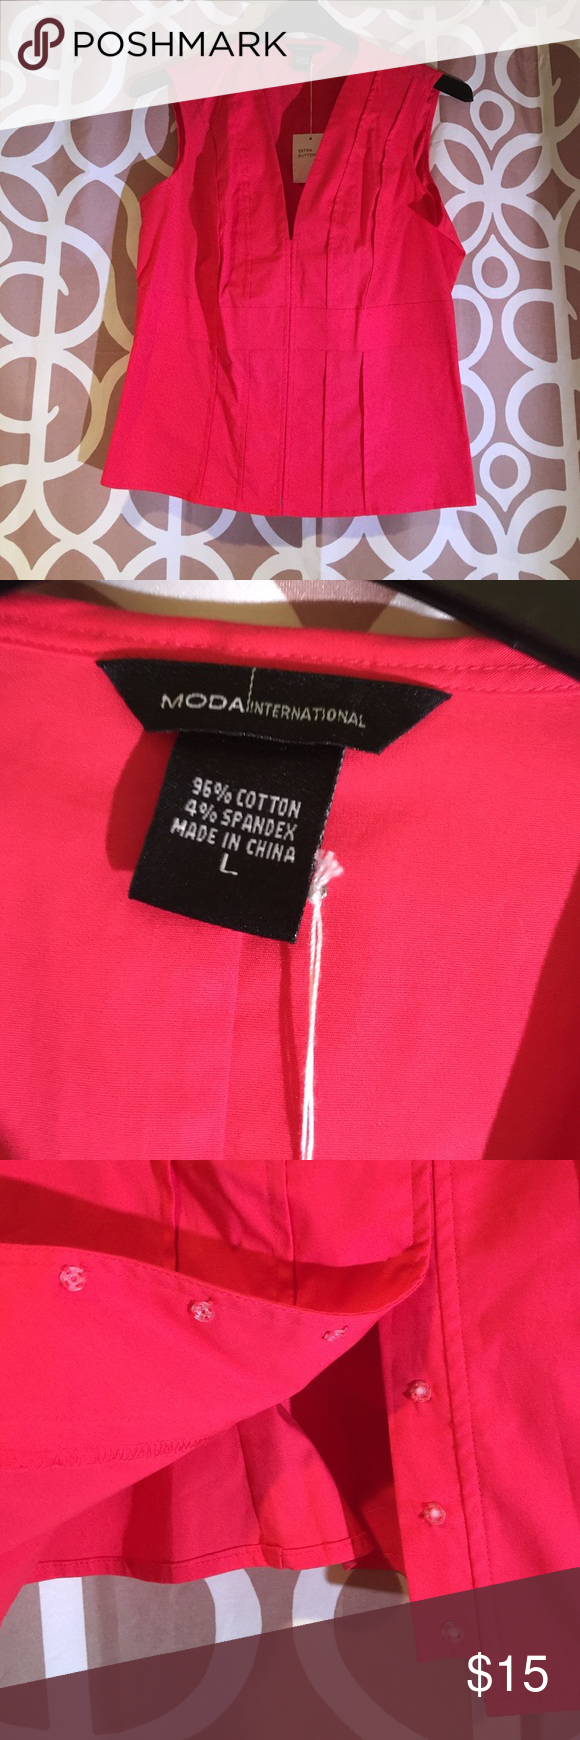 Victoria Secret Moda Int. top in dark pink Purchased but never worn from Victoria Secret. Runs small. Plastic snaps up the front and pleating in the back. Extra snaps included. Pristine condition. 96% cotton and 4% spandex material. Very classy! Moda International Tops Button Down Shirts